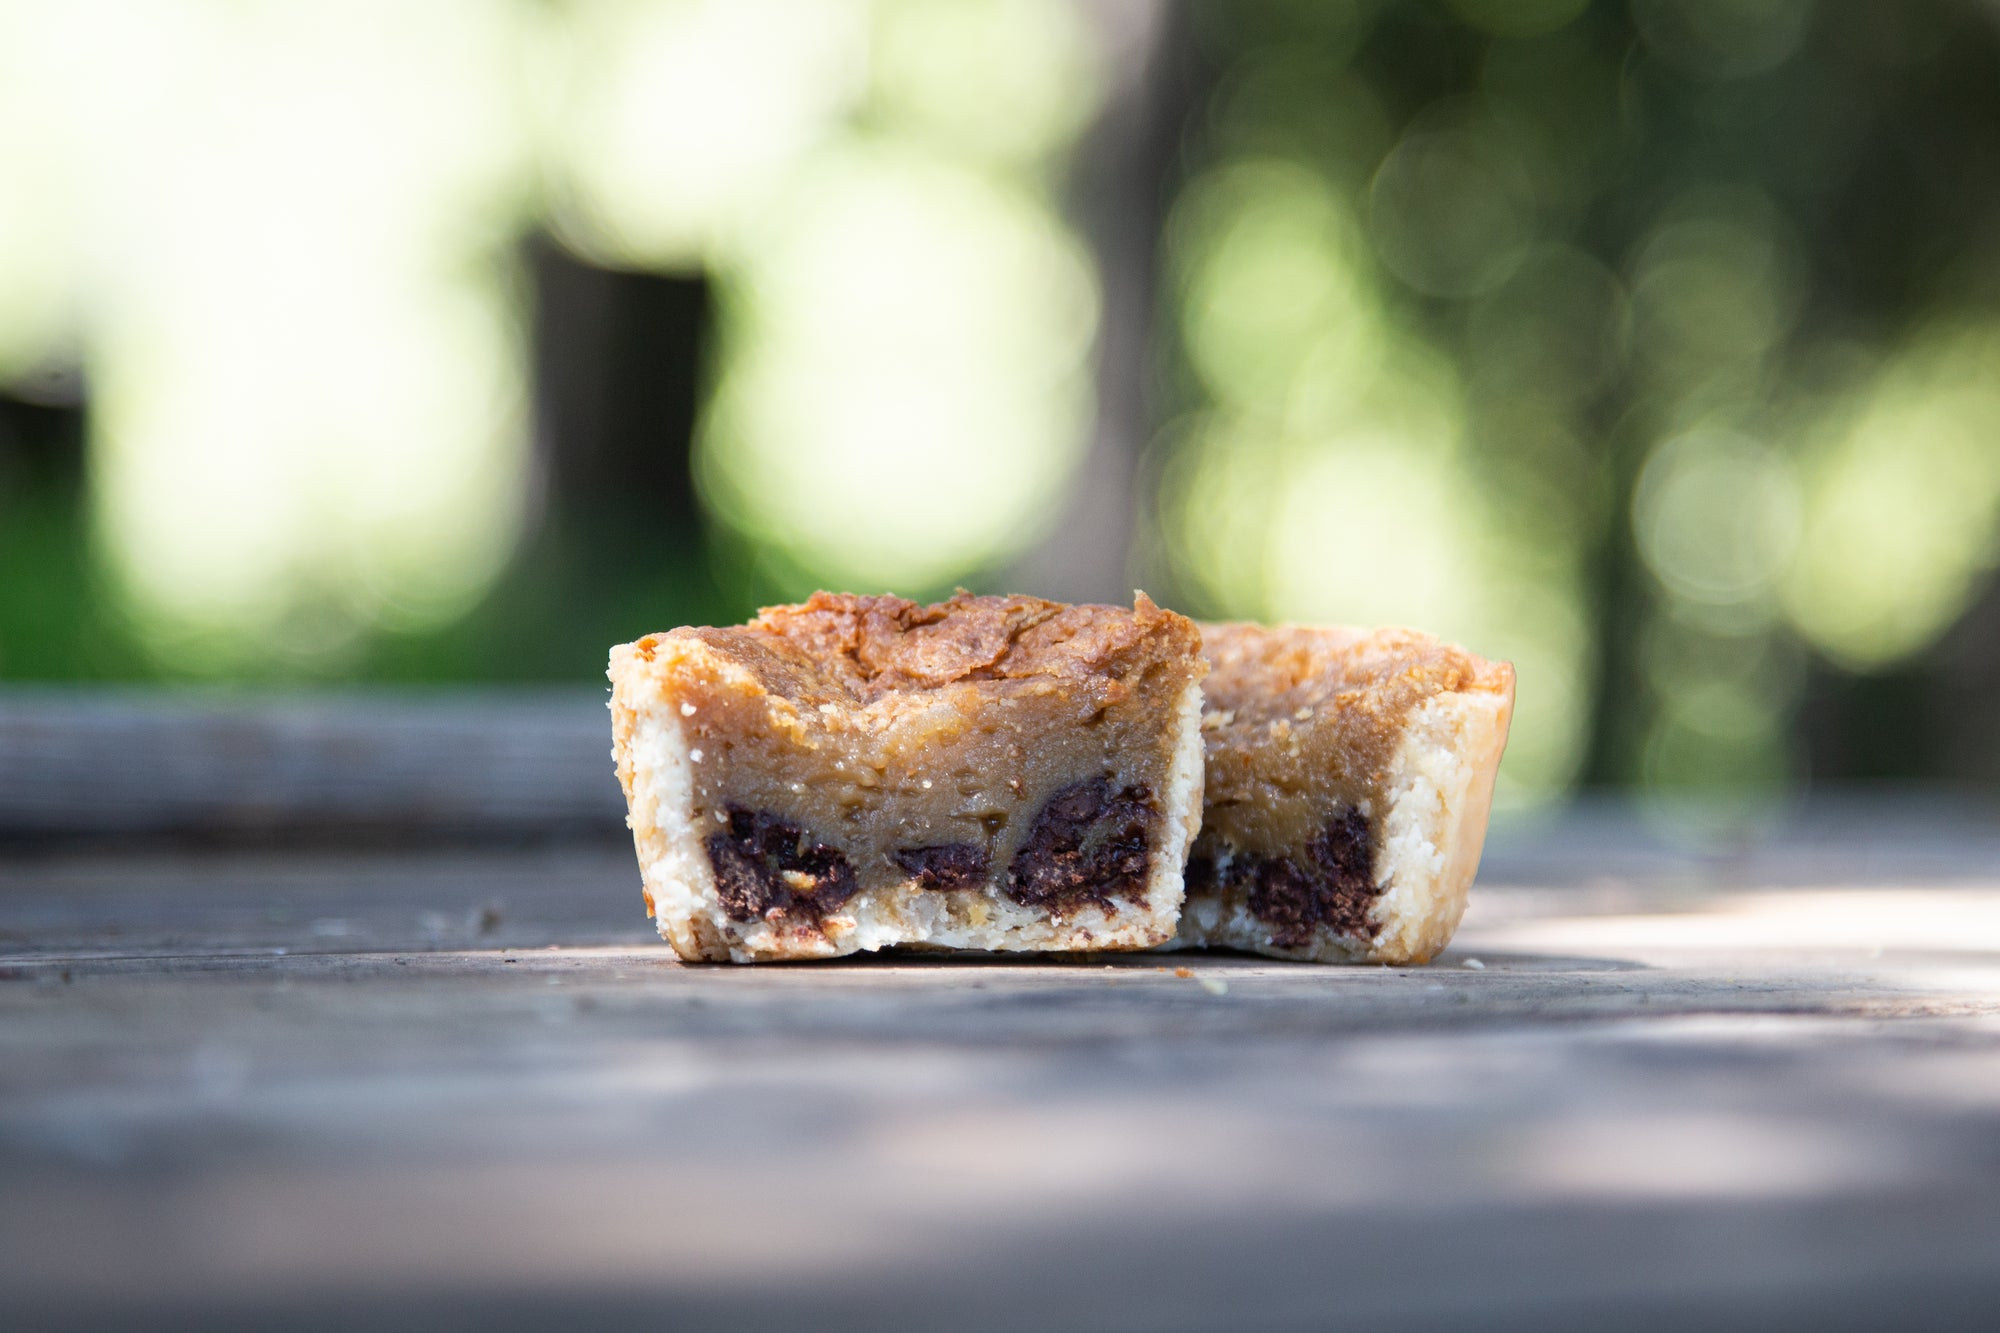 Chocolate Chip Butter Tart